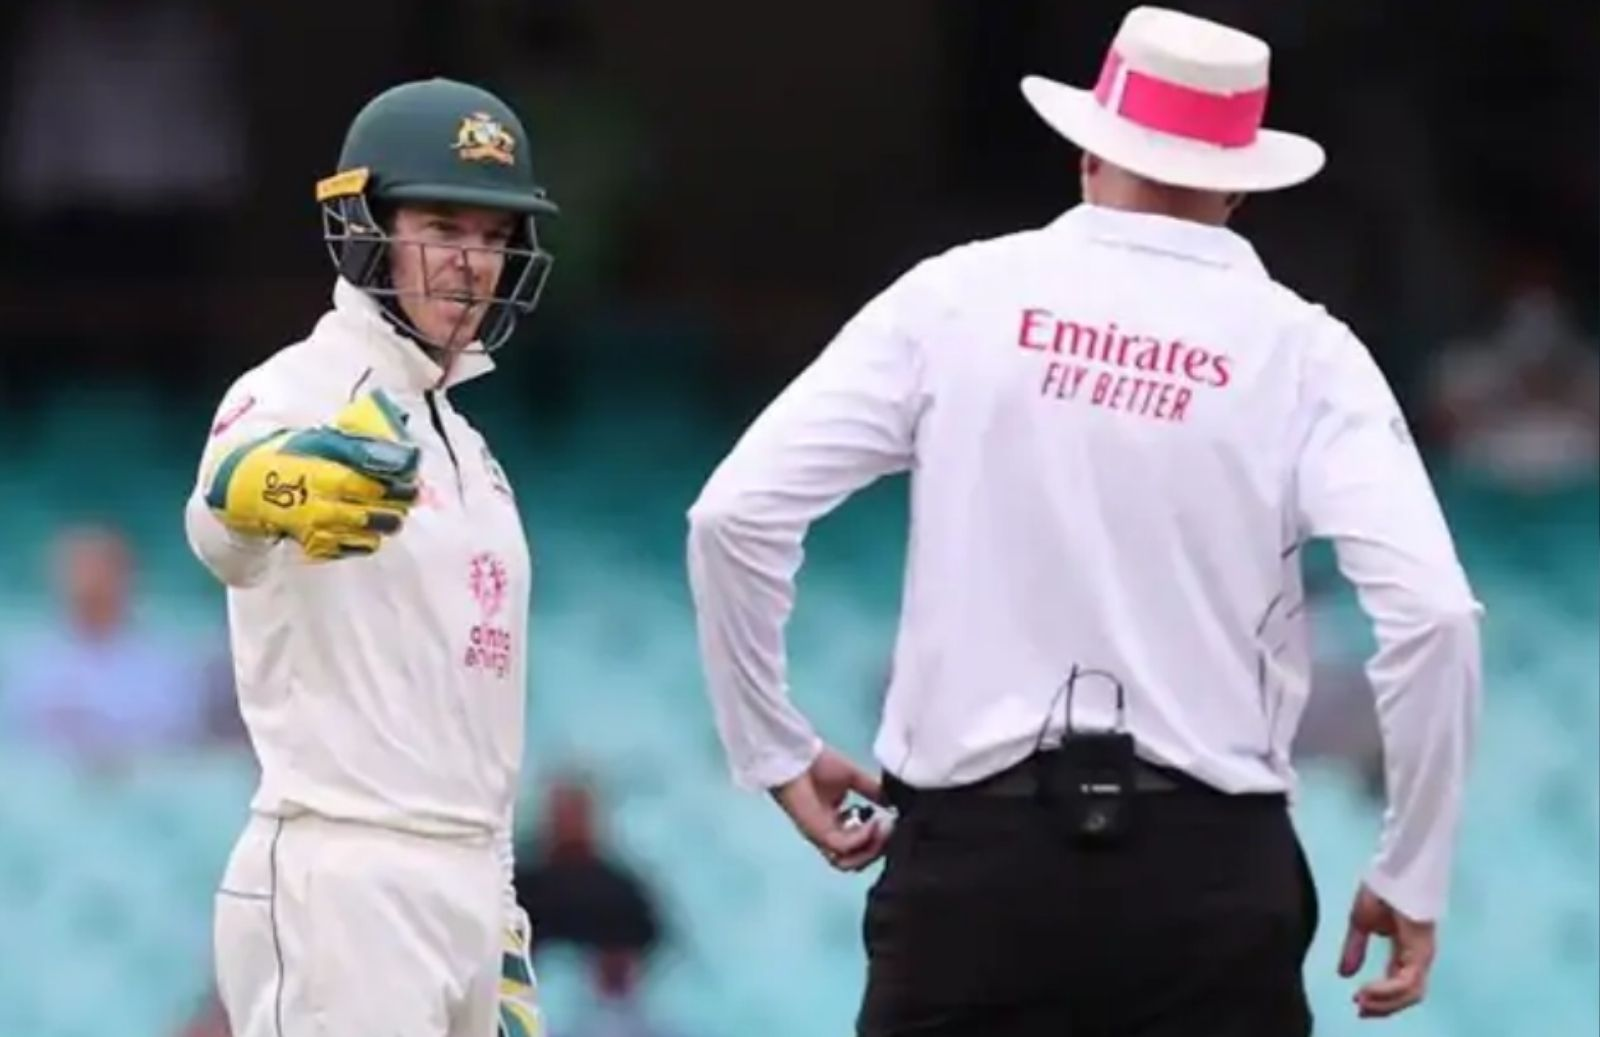 WATCH_-Tim-Paine-Calls-R-Ashwin-d__khead'-Stump-Mic-Catches-His-Voice-Clip-Gets-Viral-On-Social-Media-2